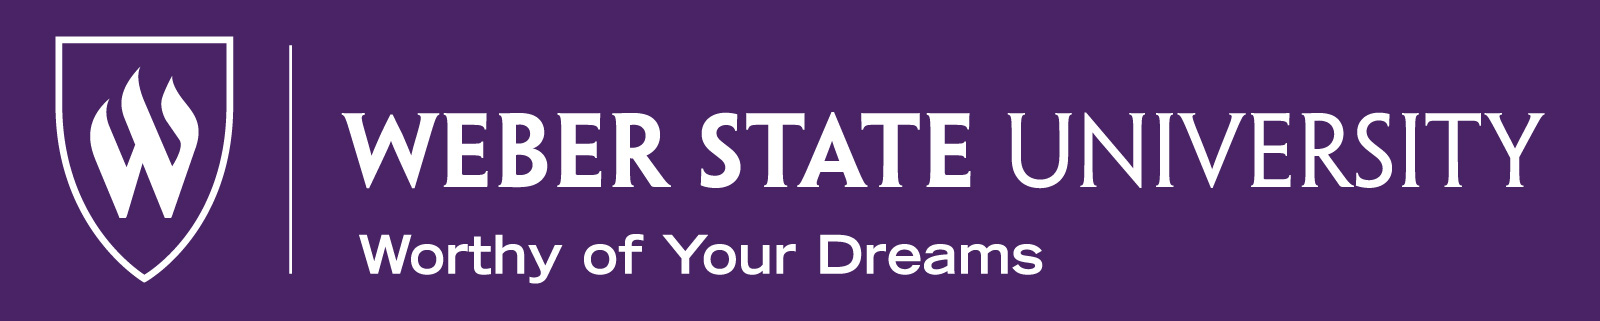 Weber State University Worthy of Your Dreams